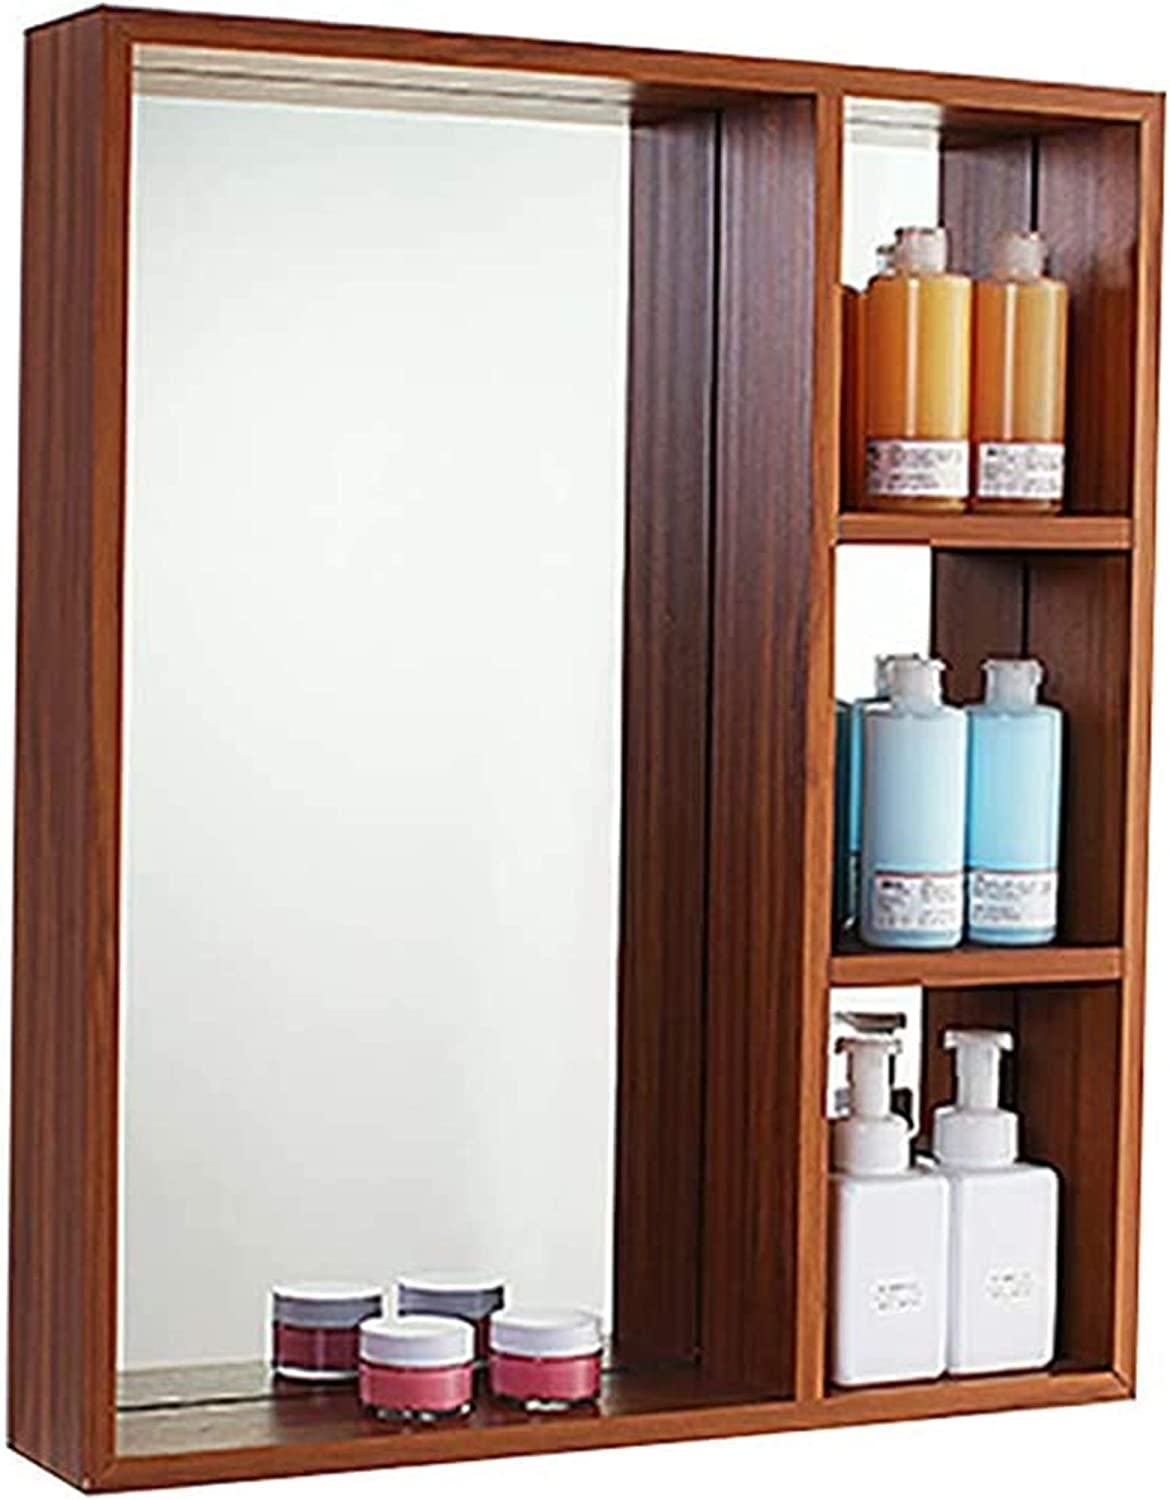 NJOLG Mirrors for Bathroom Modern Ranking TOP6 Fort Worth Mall Cabi Rectangle Medicine Simple